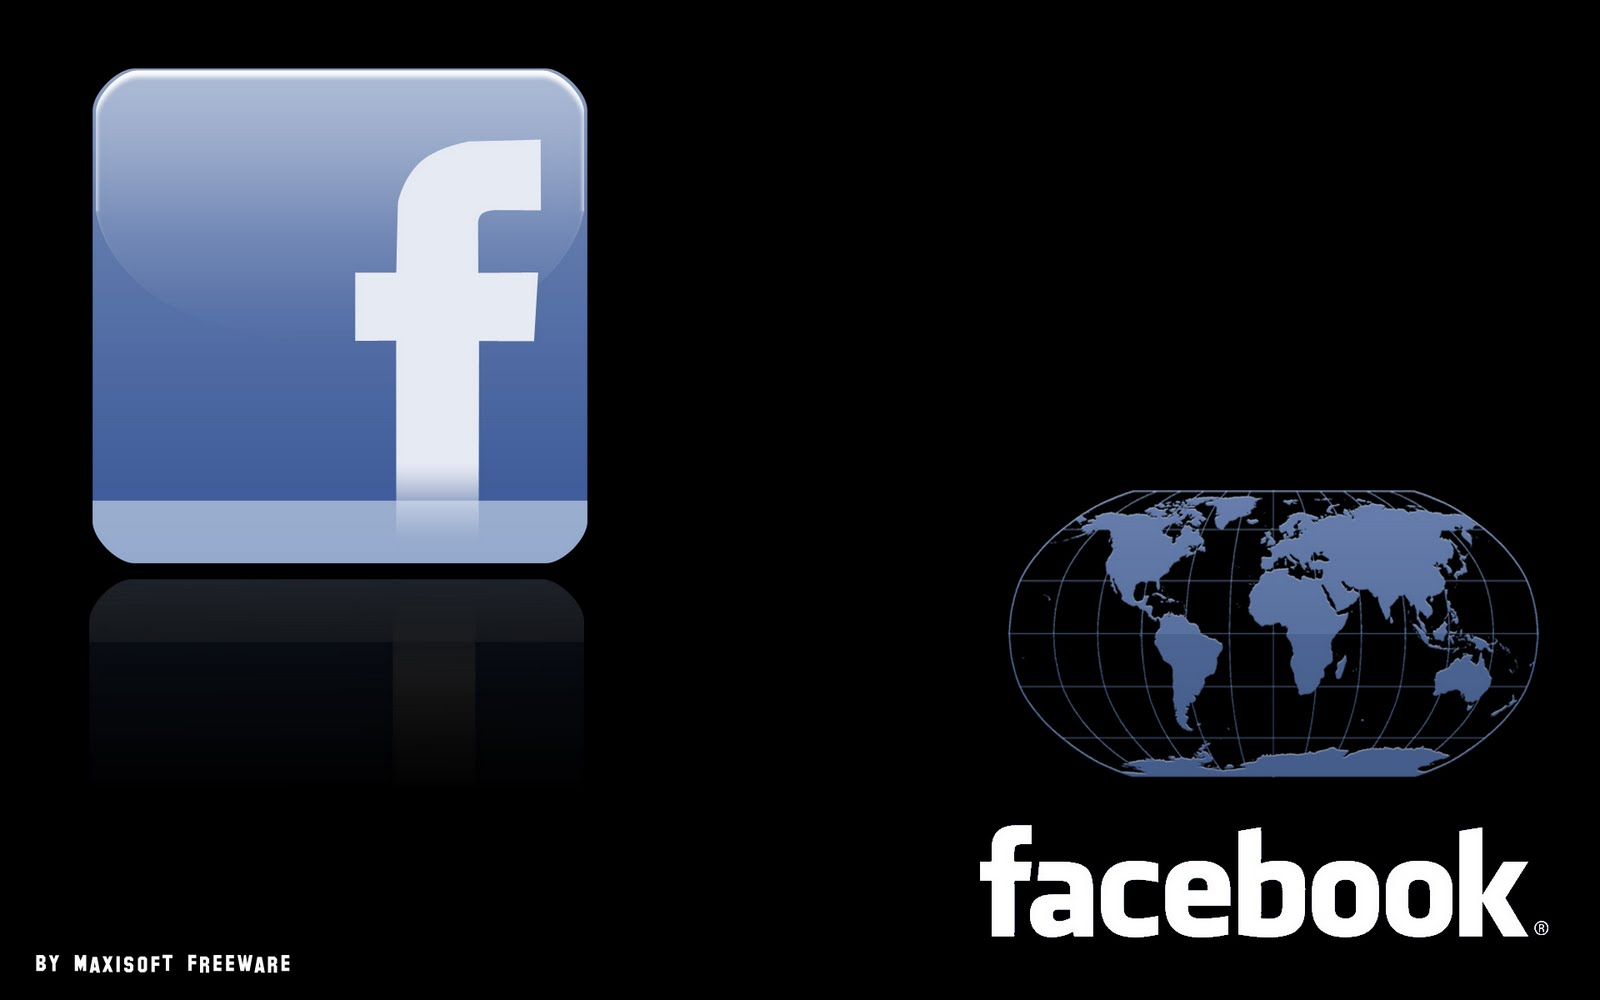 Facebook Wallpaper by maxisoftfreeware